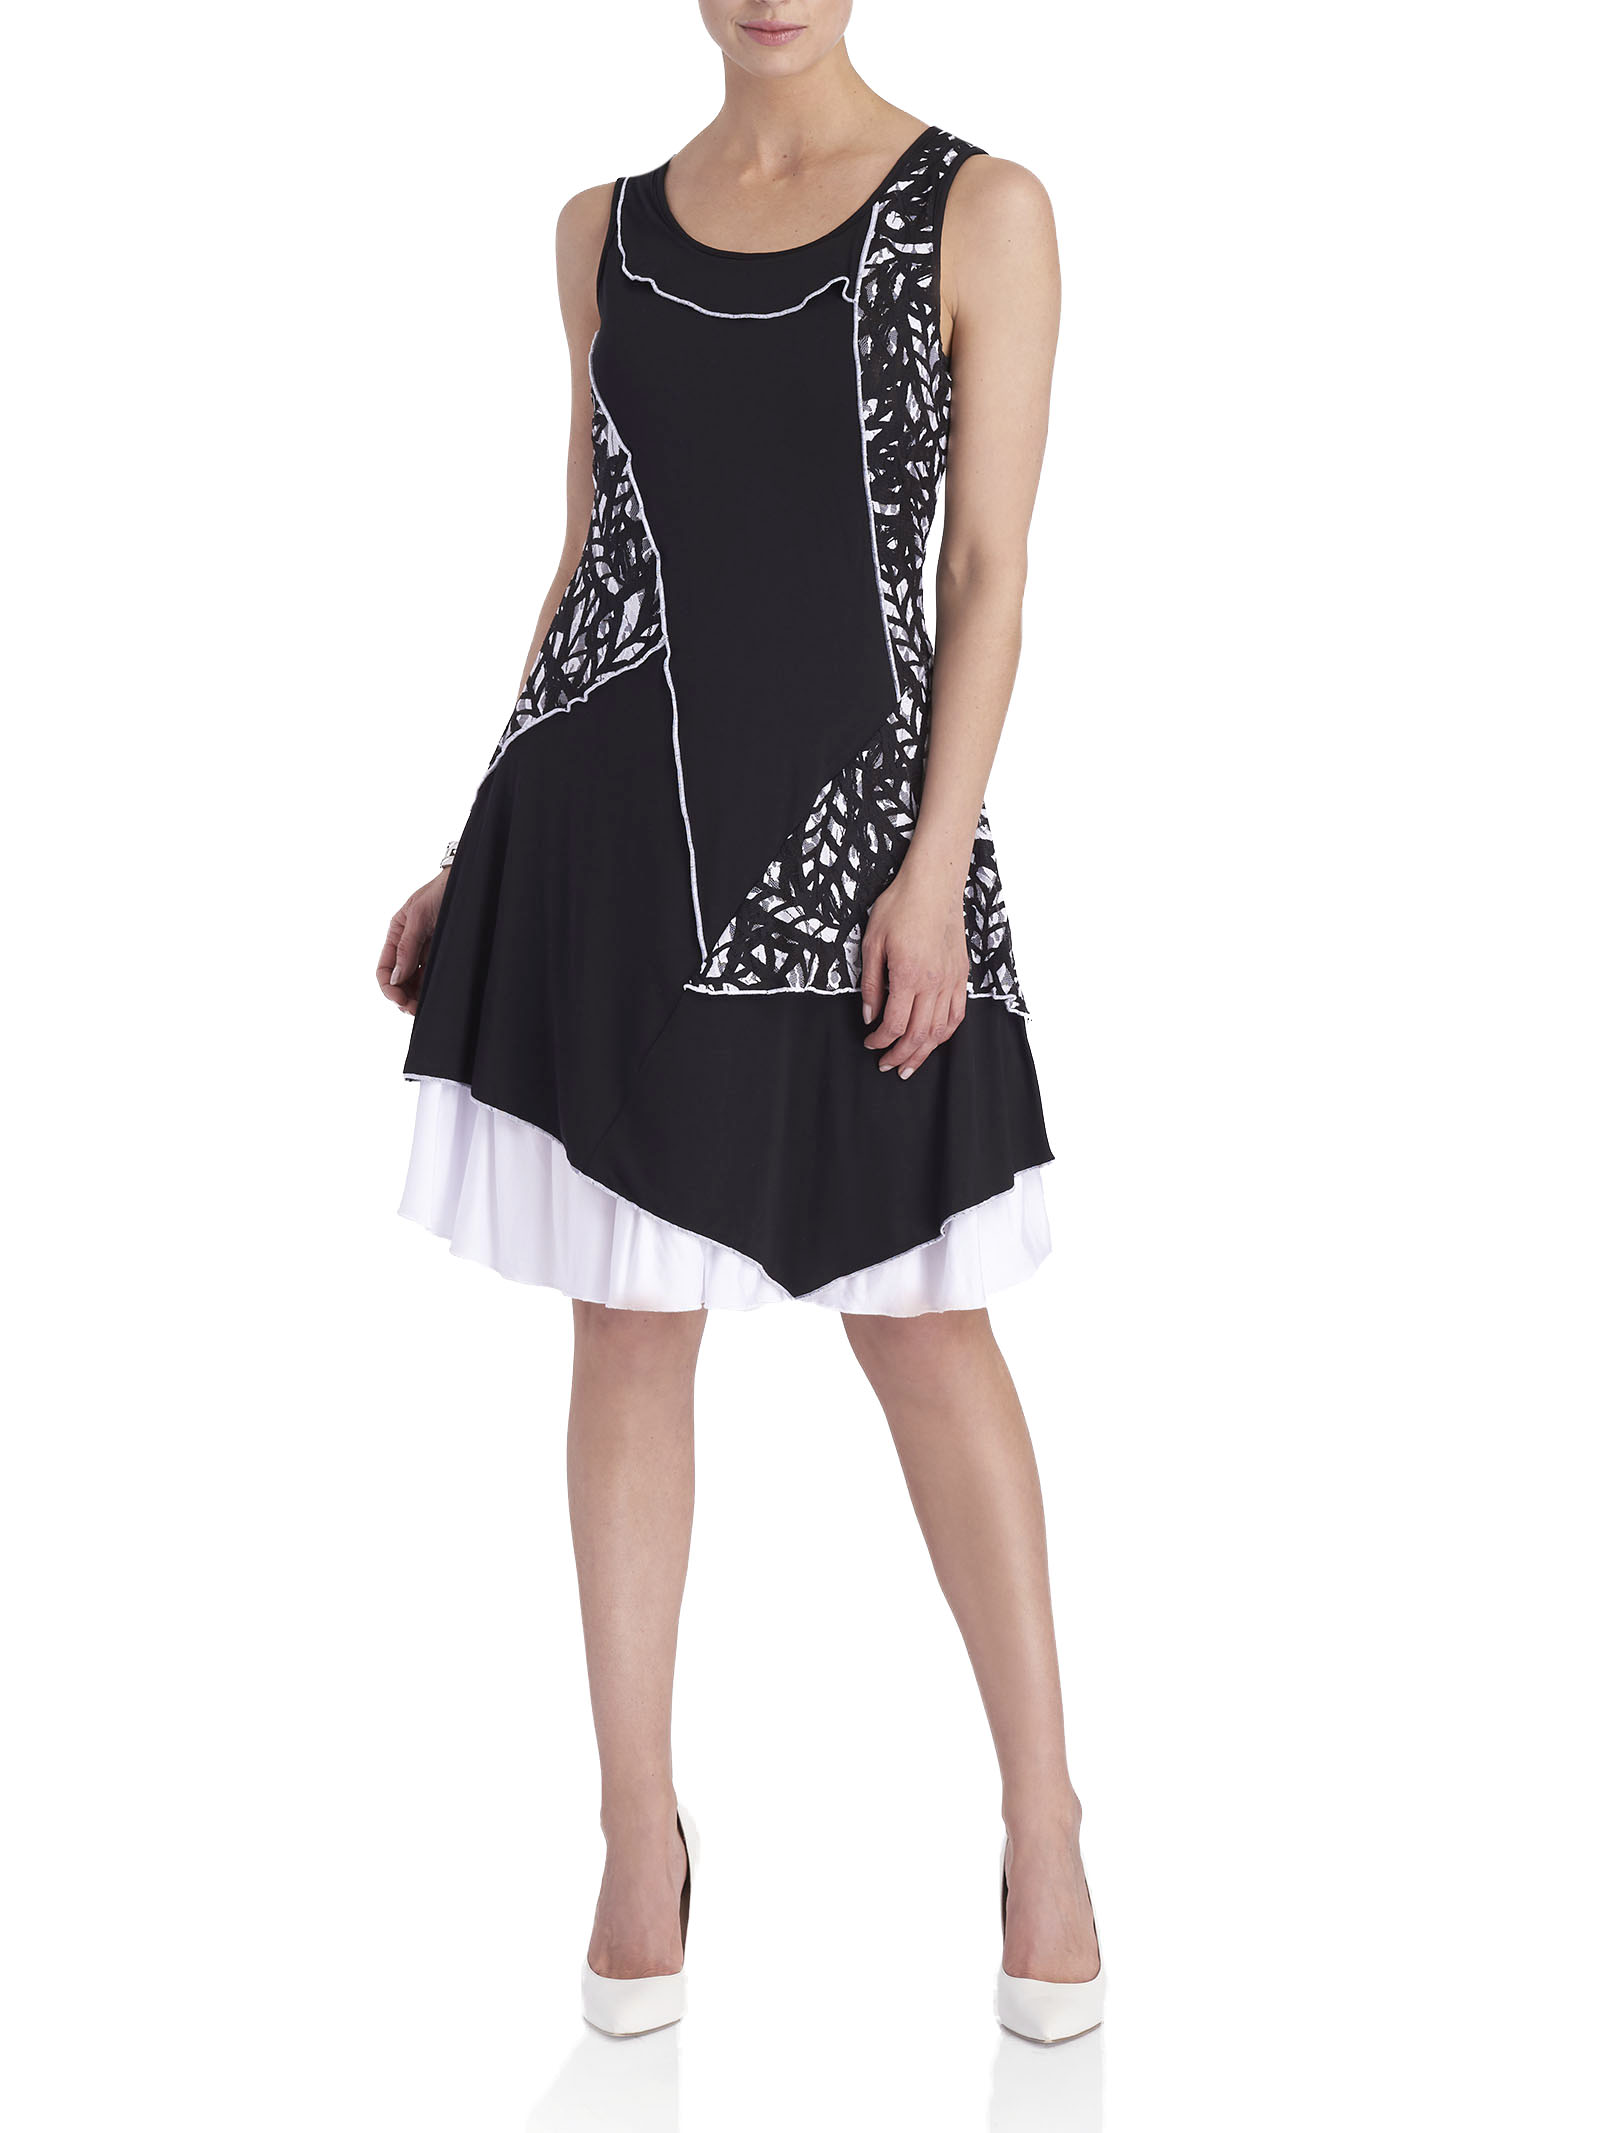 Lace Printed Fit & Flare Dress, Black, hi-res